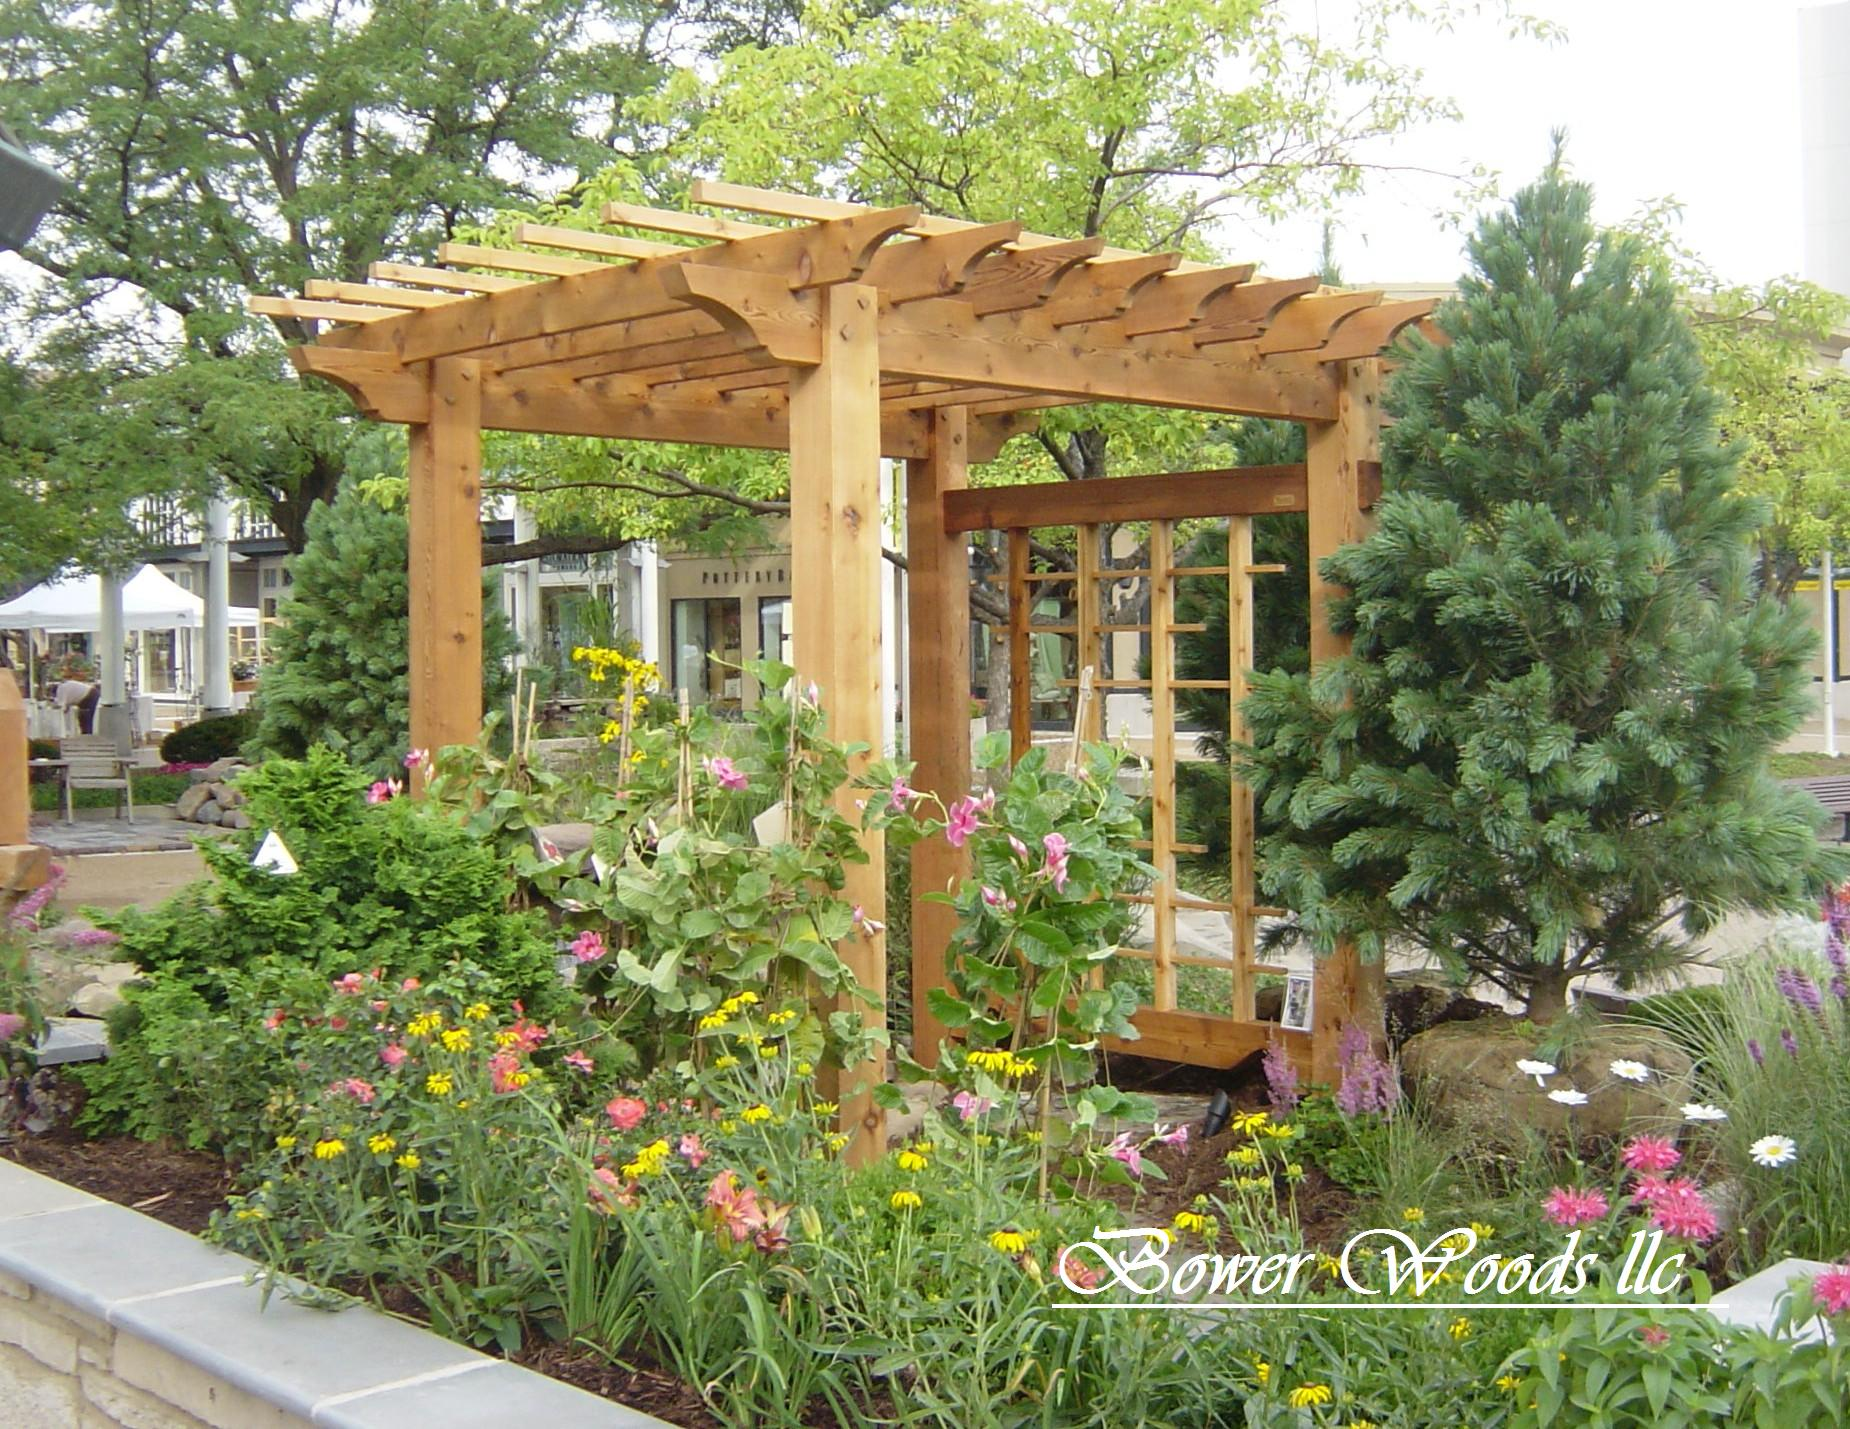 Arbor Designs Ideas arbor designs ideas backyard arbor design ideas backyard arbor 1000 Images About Arbor Pergola On Pinterest Pergolas Arbors And Pergola Designs